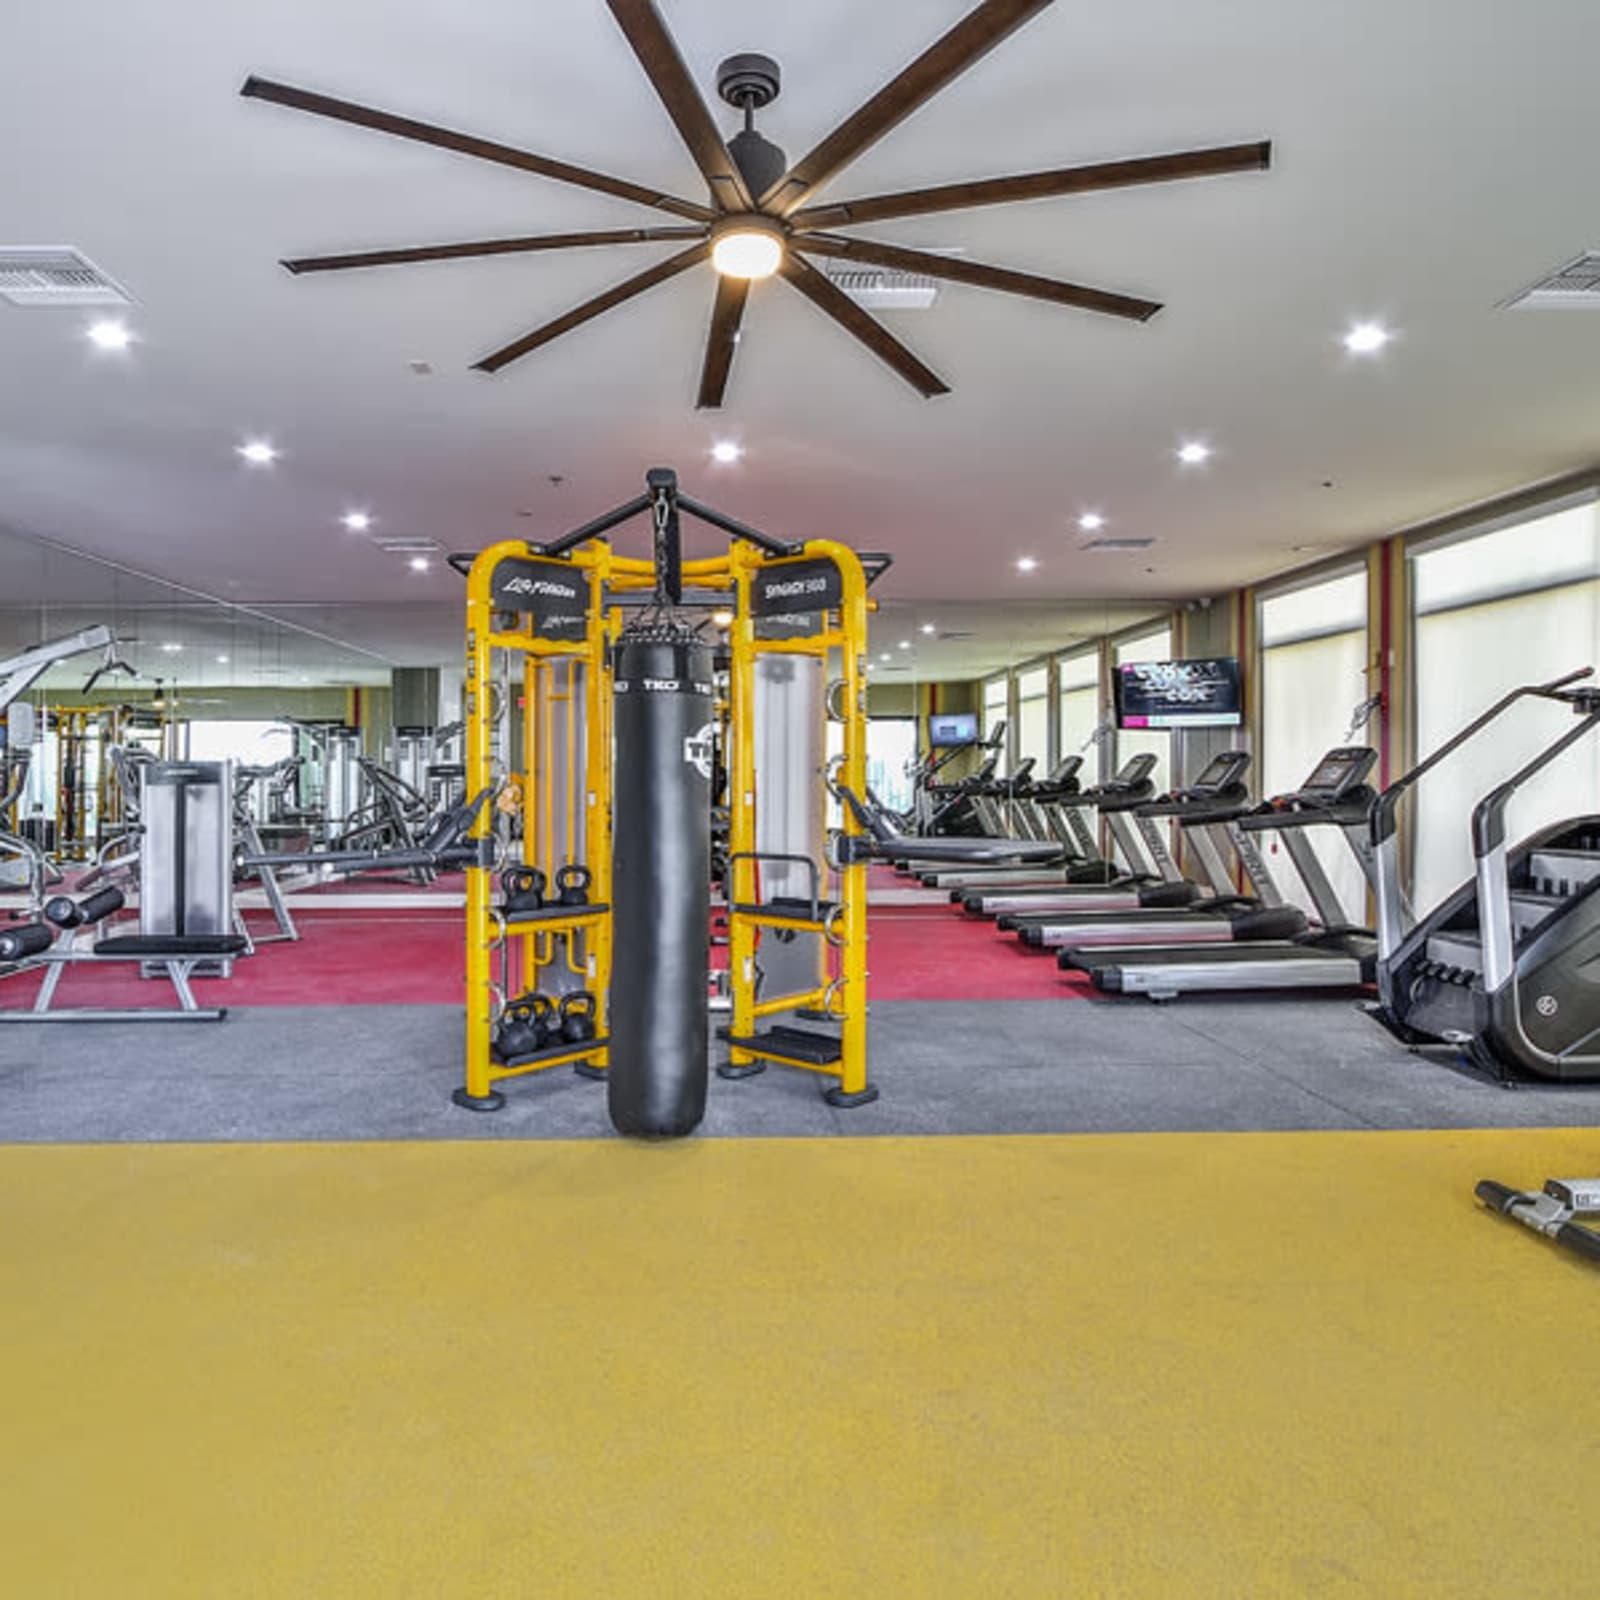 We offer a fully equipped fitness center at Revolution in Henderson, Nevada